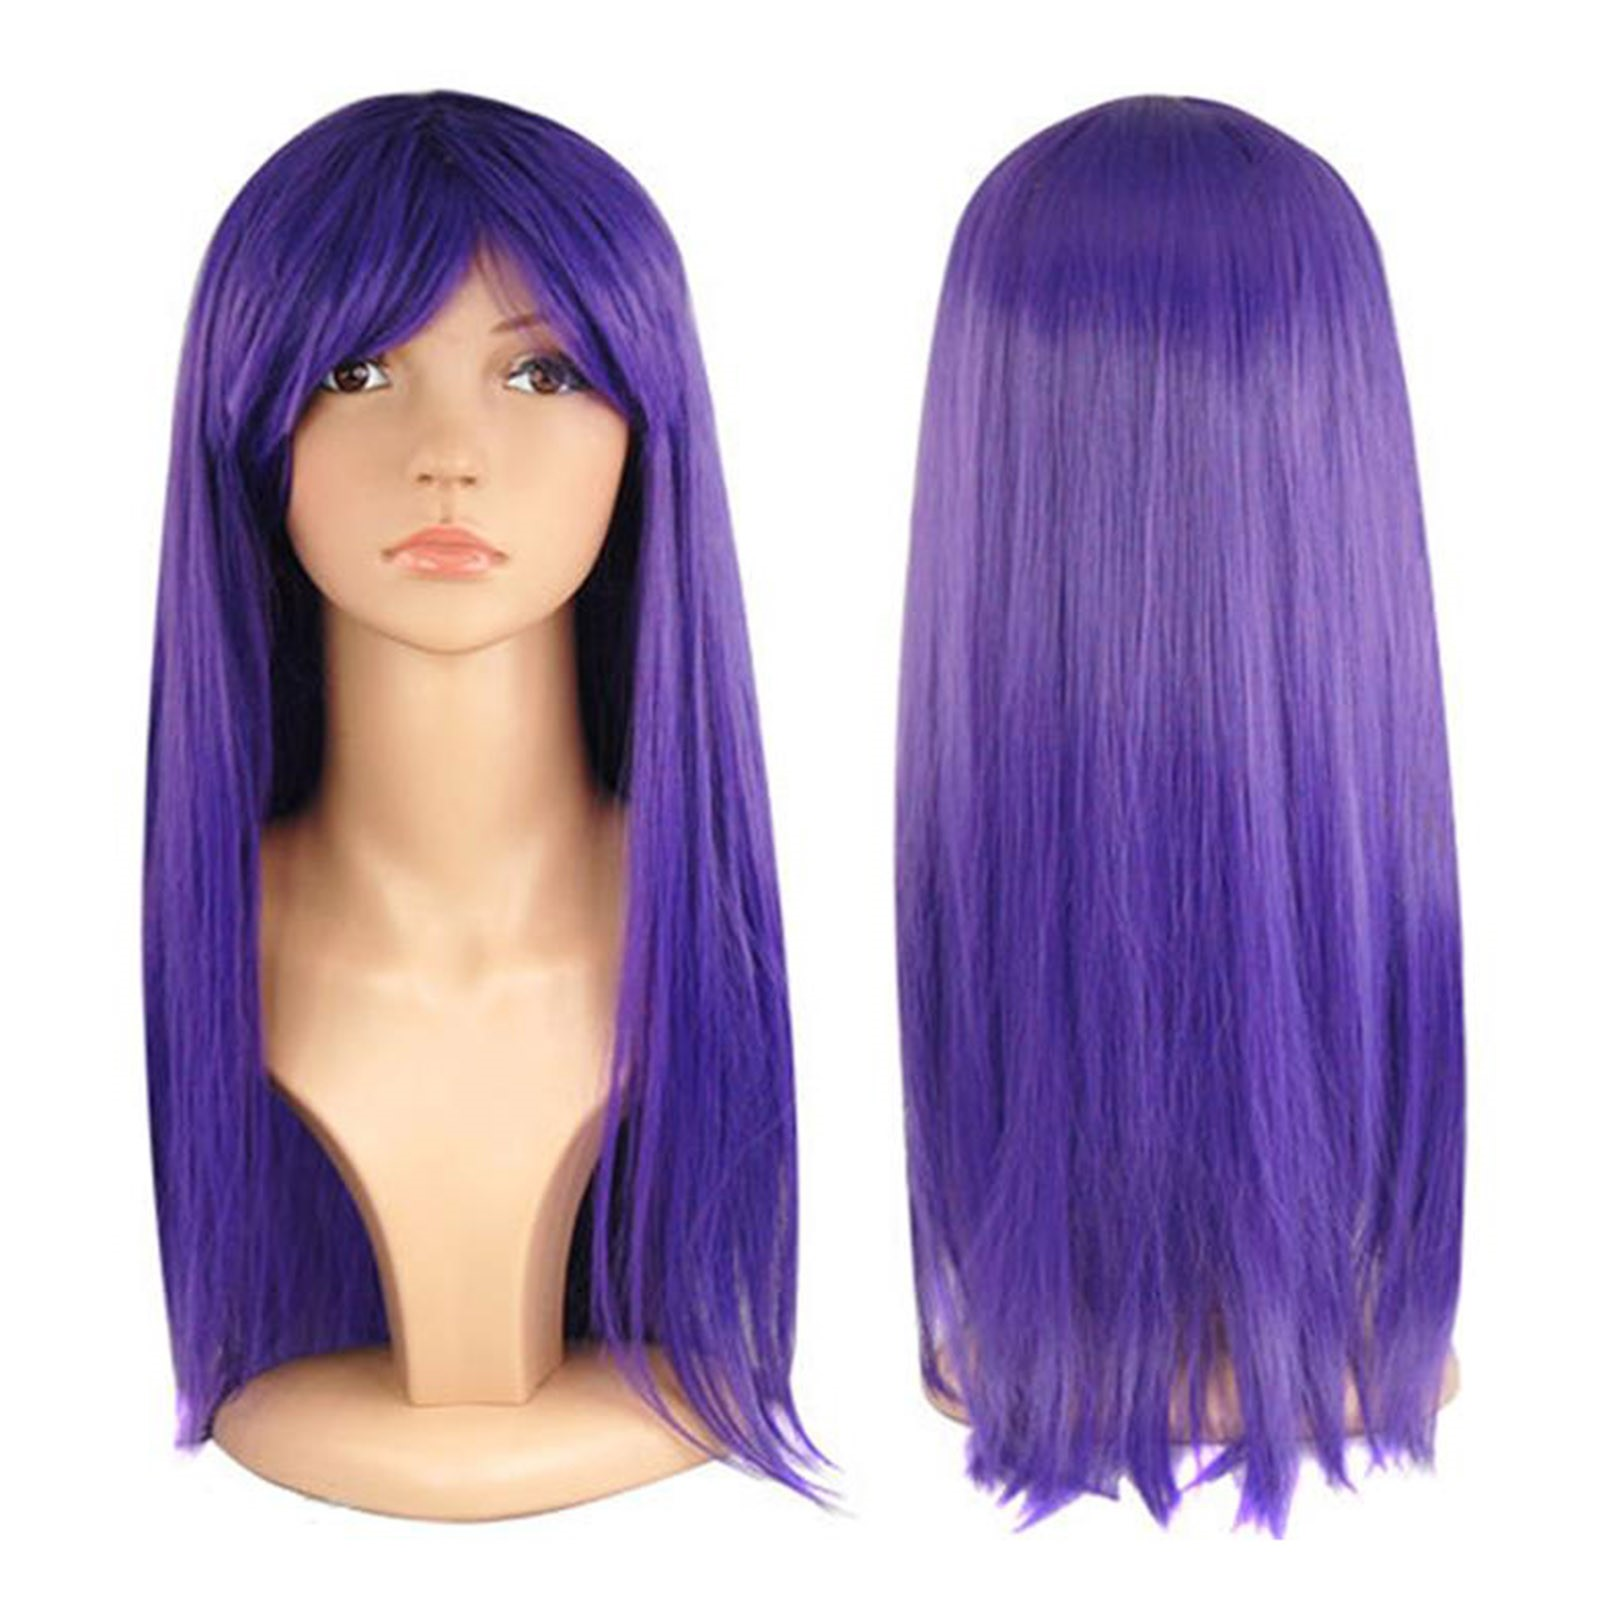 WOMENS-LADIES-LONG-19-034-STRAIGHT-WIG-FANCY-DRESS-COSPLAY-WIGS-POP-PARTY-COSTUME